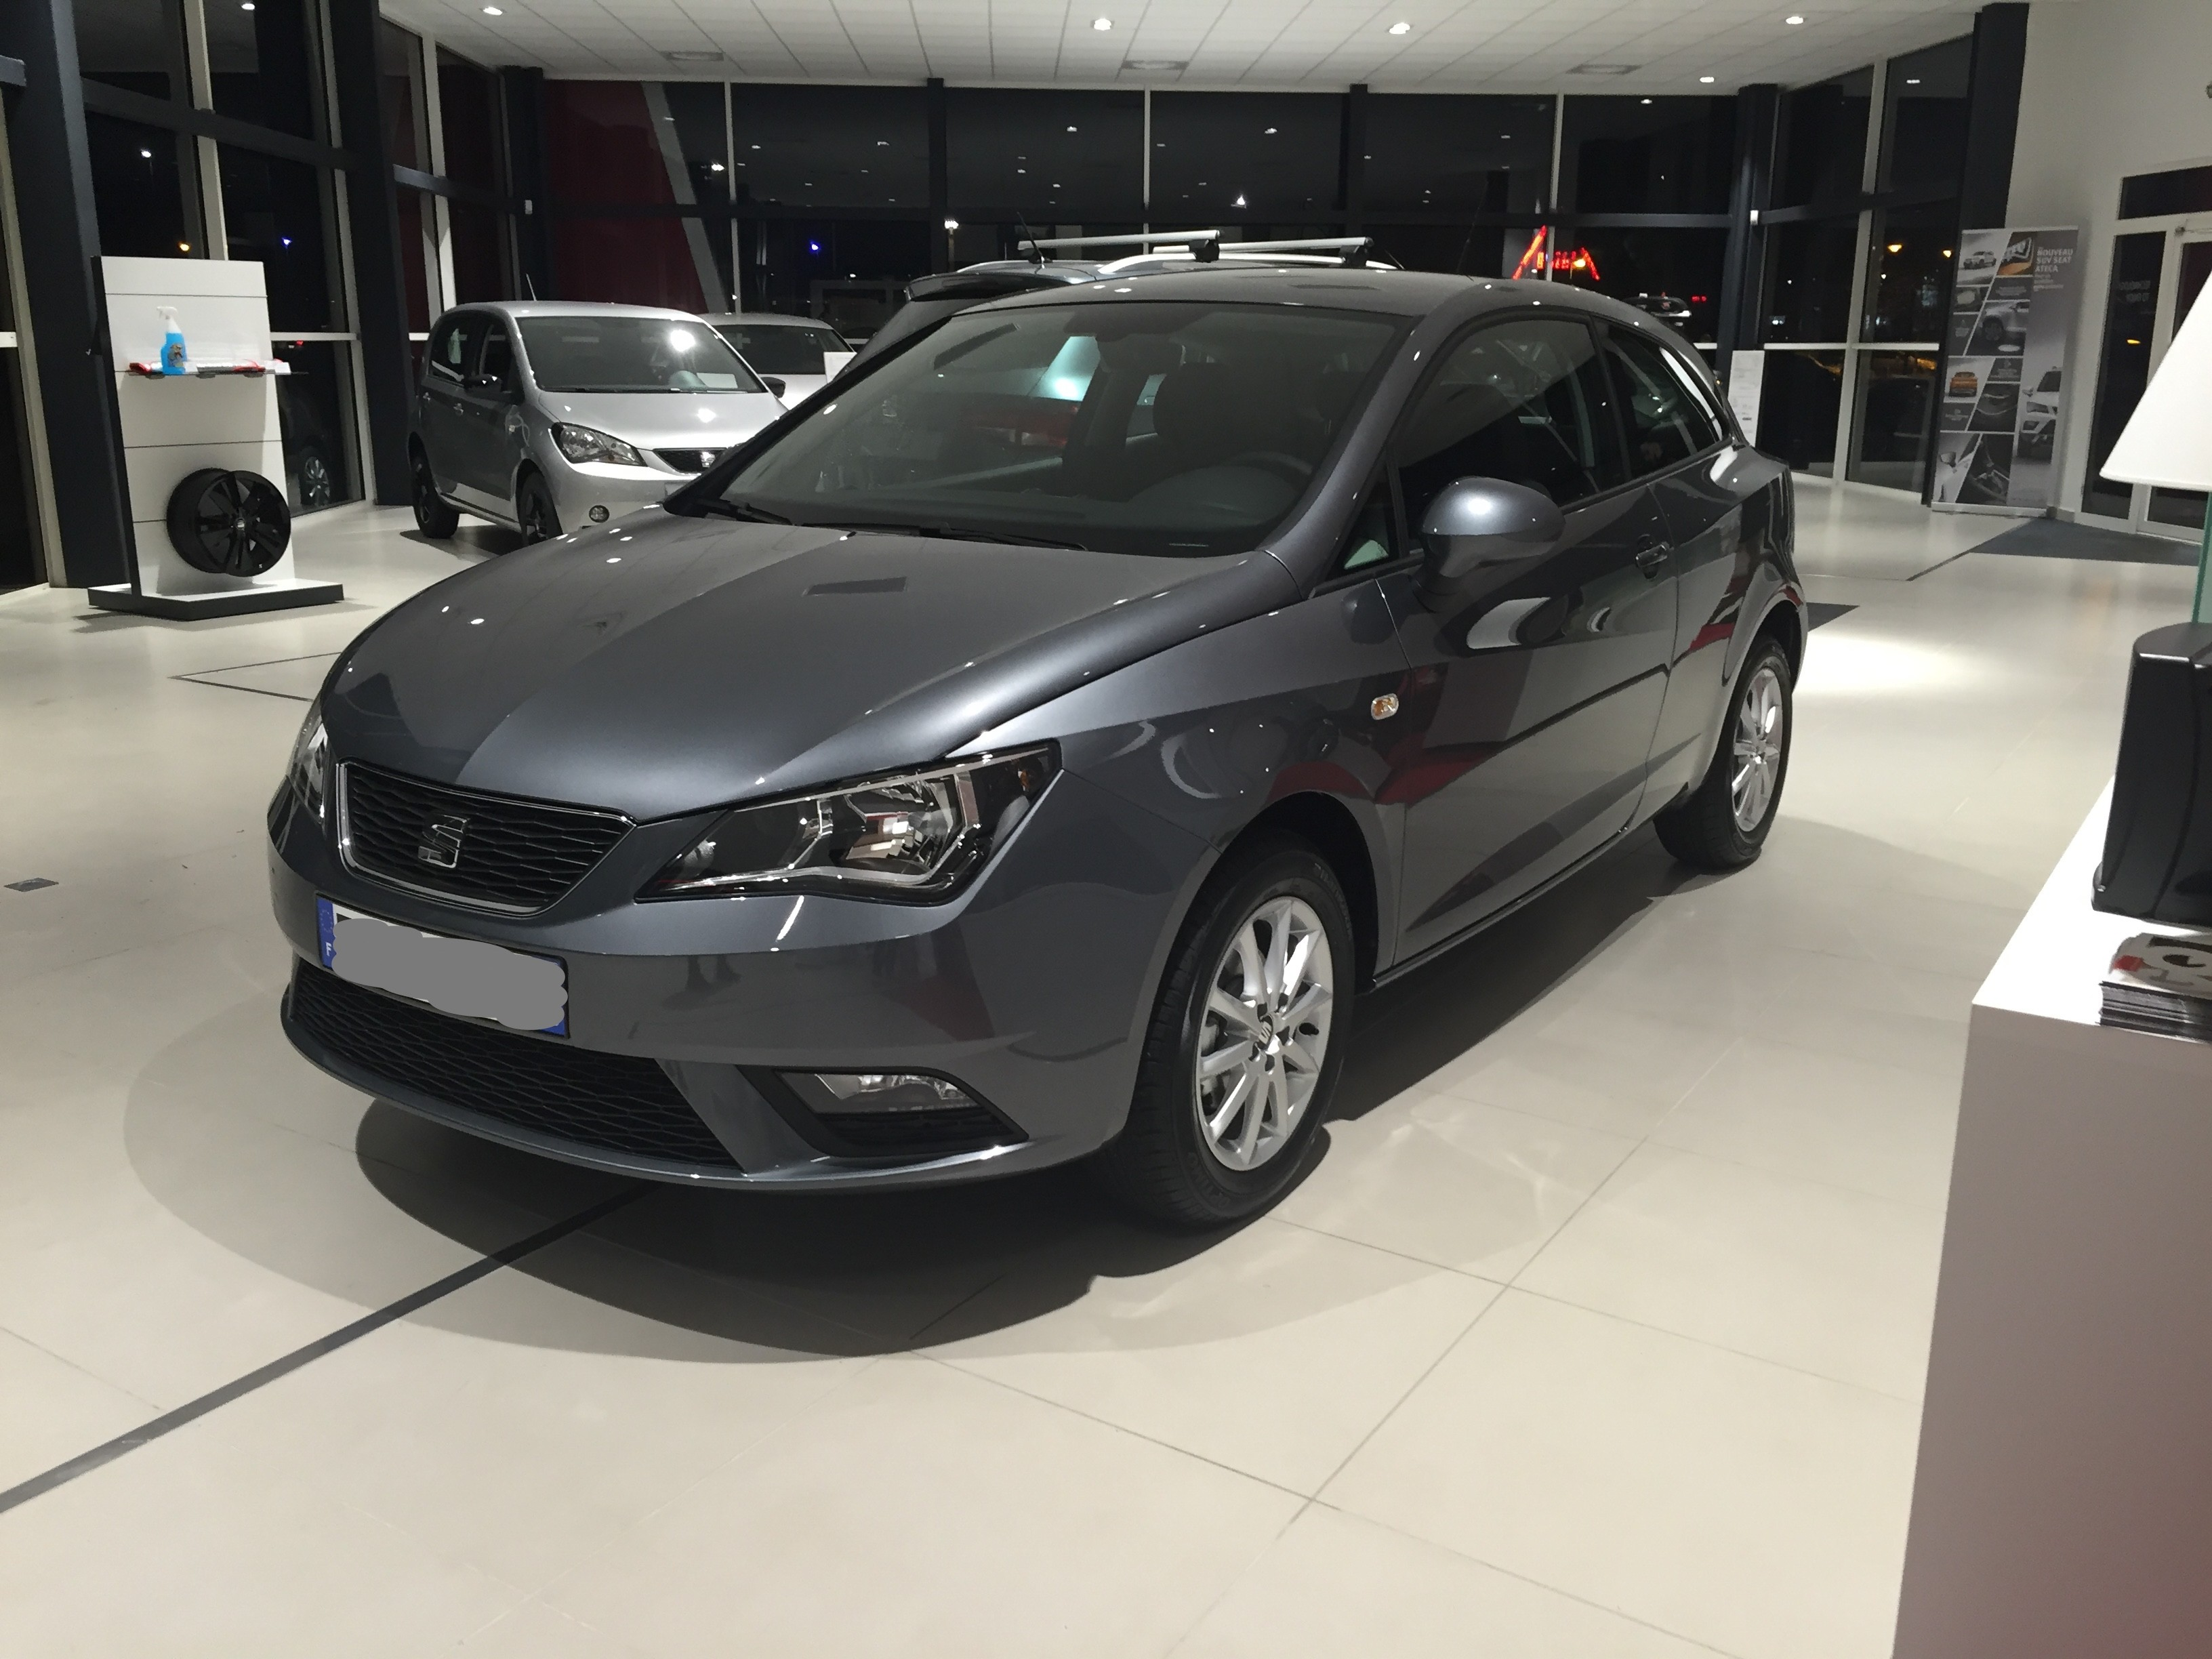 seat ibiza gris excelente seat ibiza gris 2013 125 000 en mercado libre seat ibiza iv st. Black Bedroom Furniture Sets. Home Design Ideas